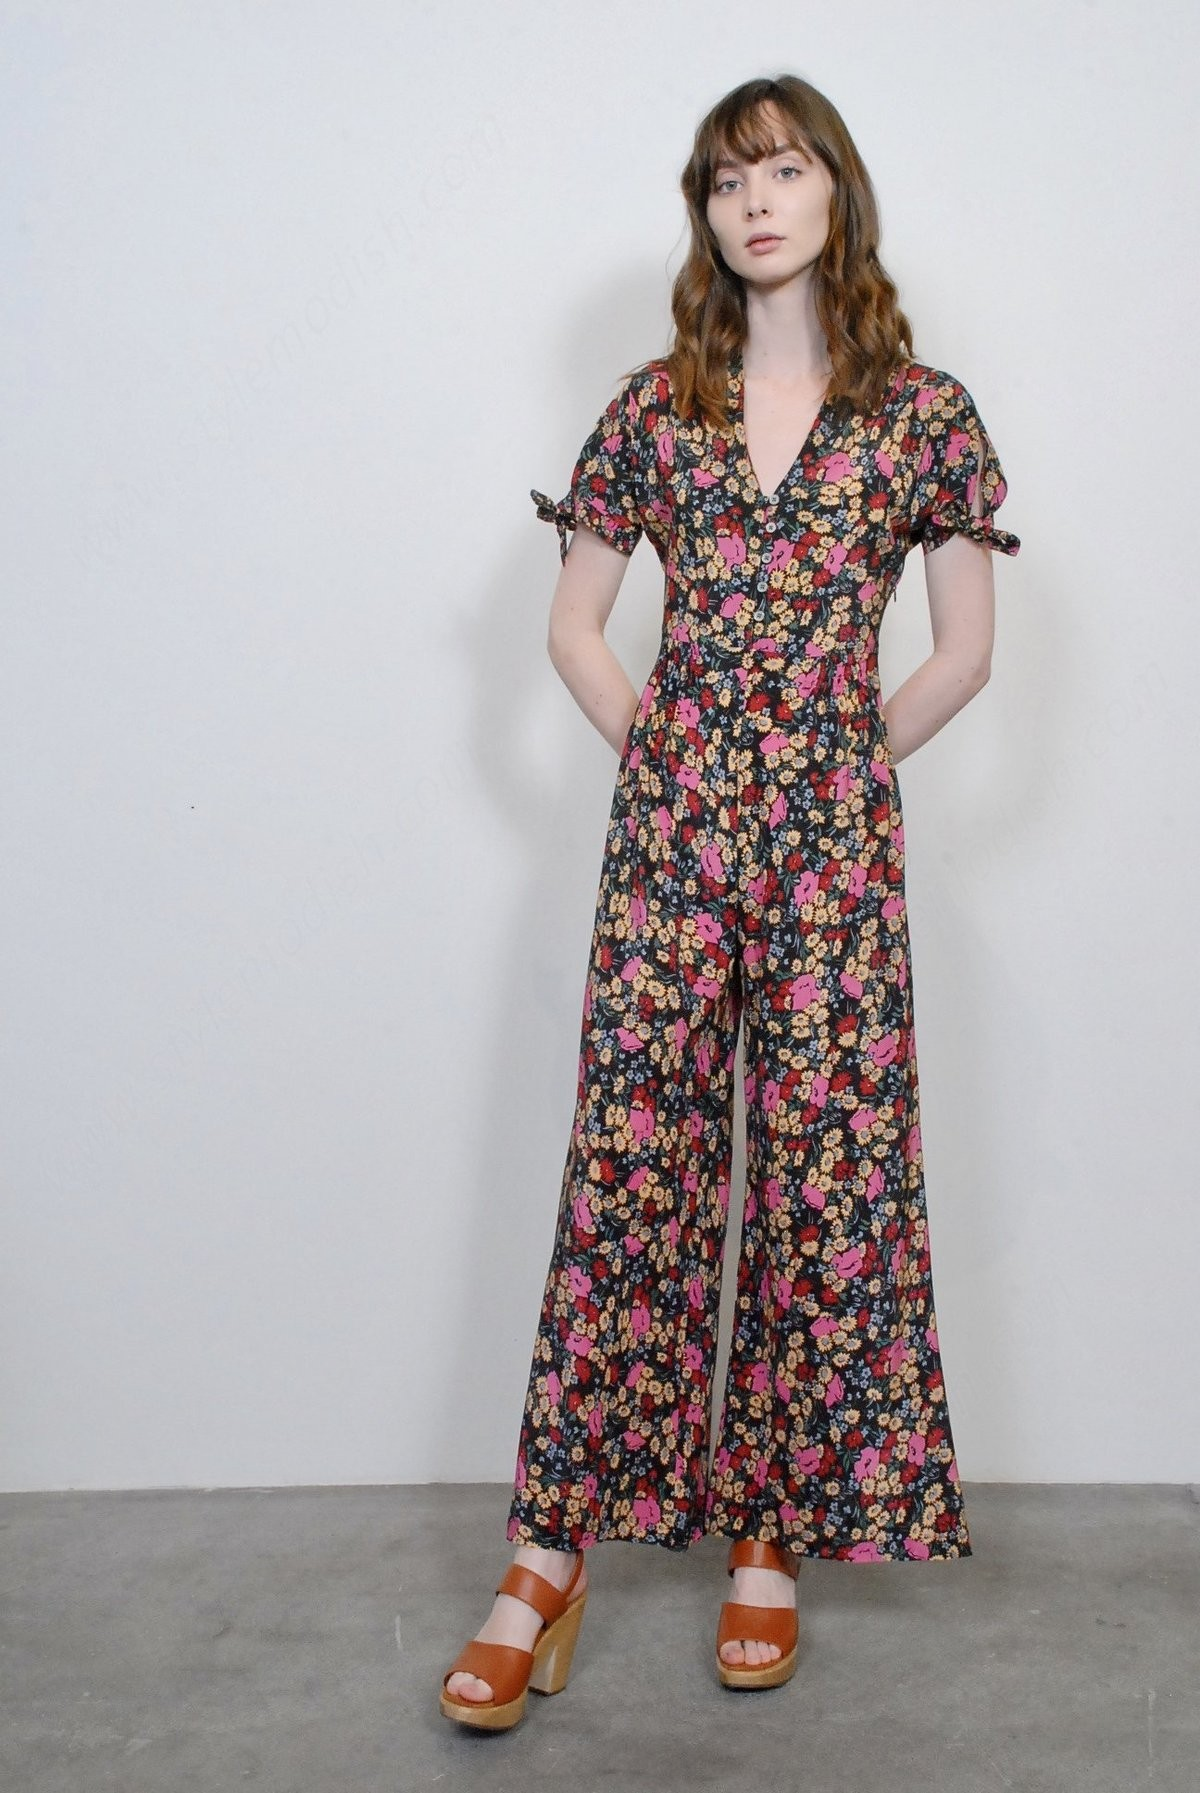 No.6 Lady's No. Althea Jumpsuit In Large Espresso London Floral - -0